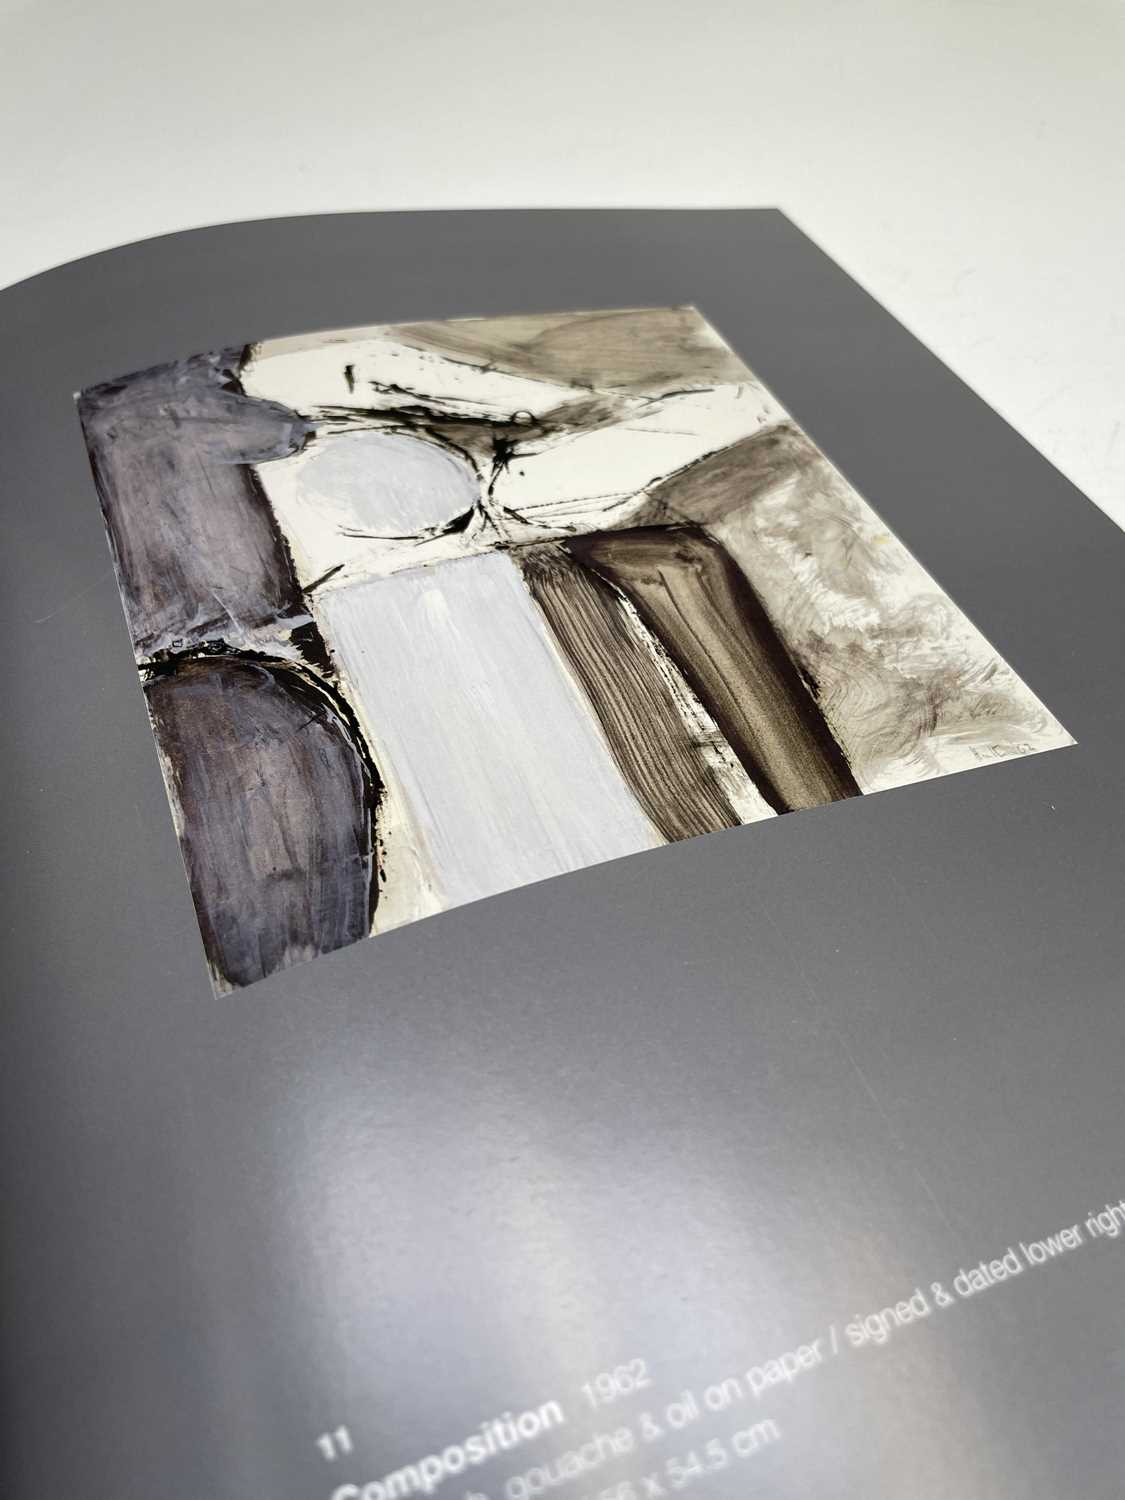 'adrian heath - paintings from the late sixties' Jonathan Clark Fine Art catalogue - Image 2 of 5